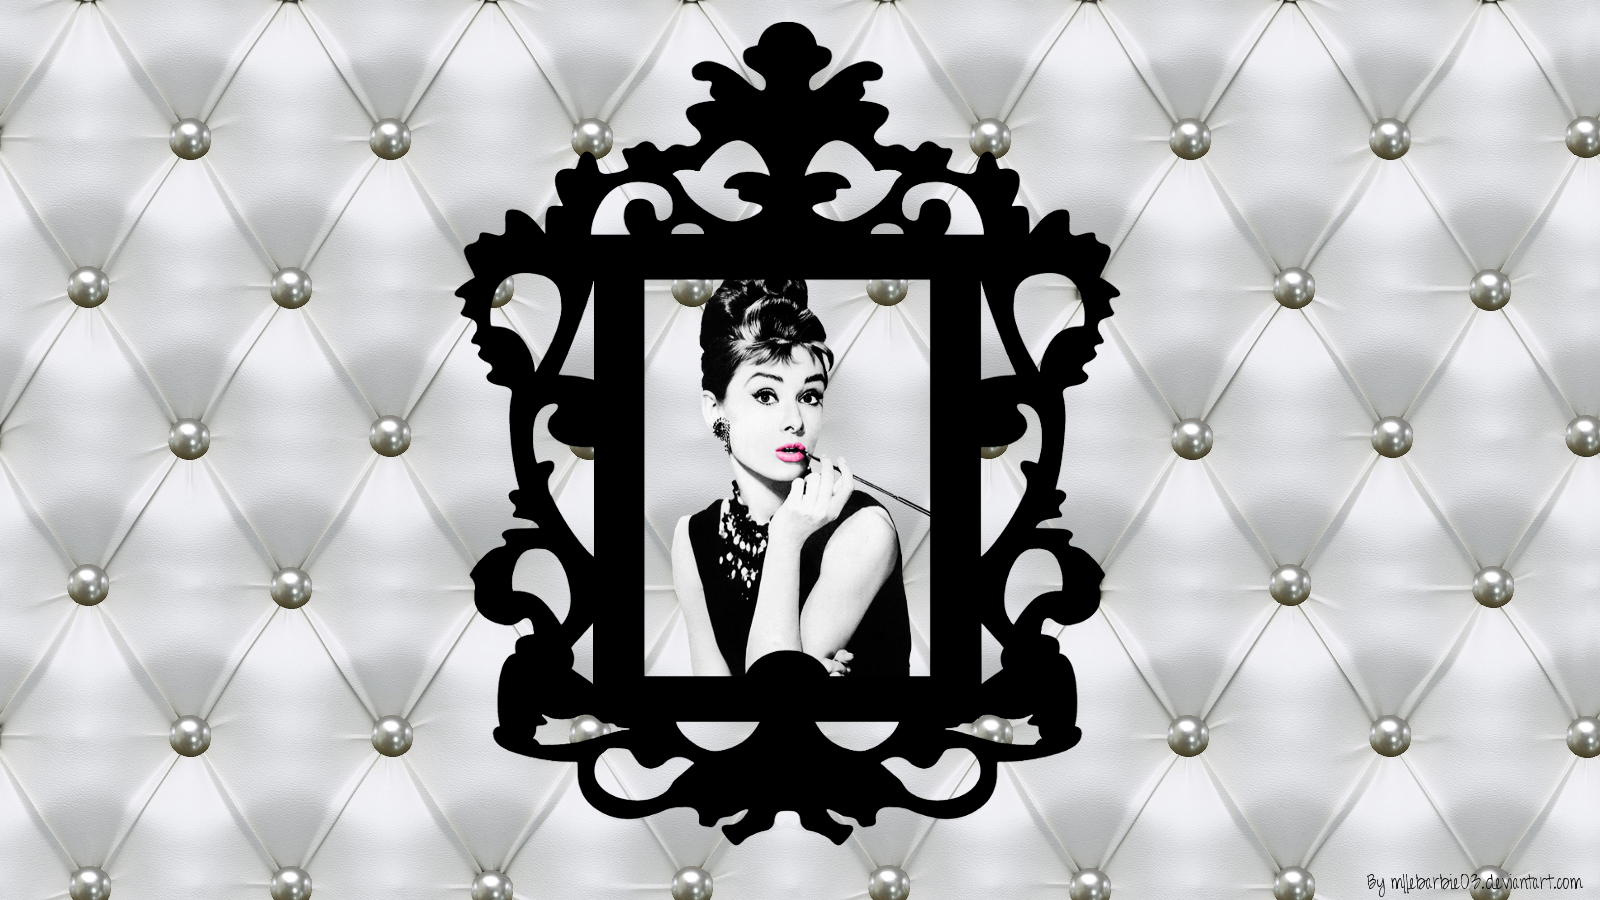 audrey_hepburn_chic_and_baroque_wallpaper_by_mllebarbie03-d50pm9s